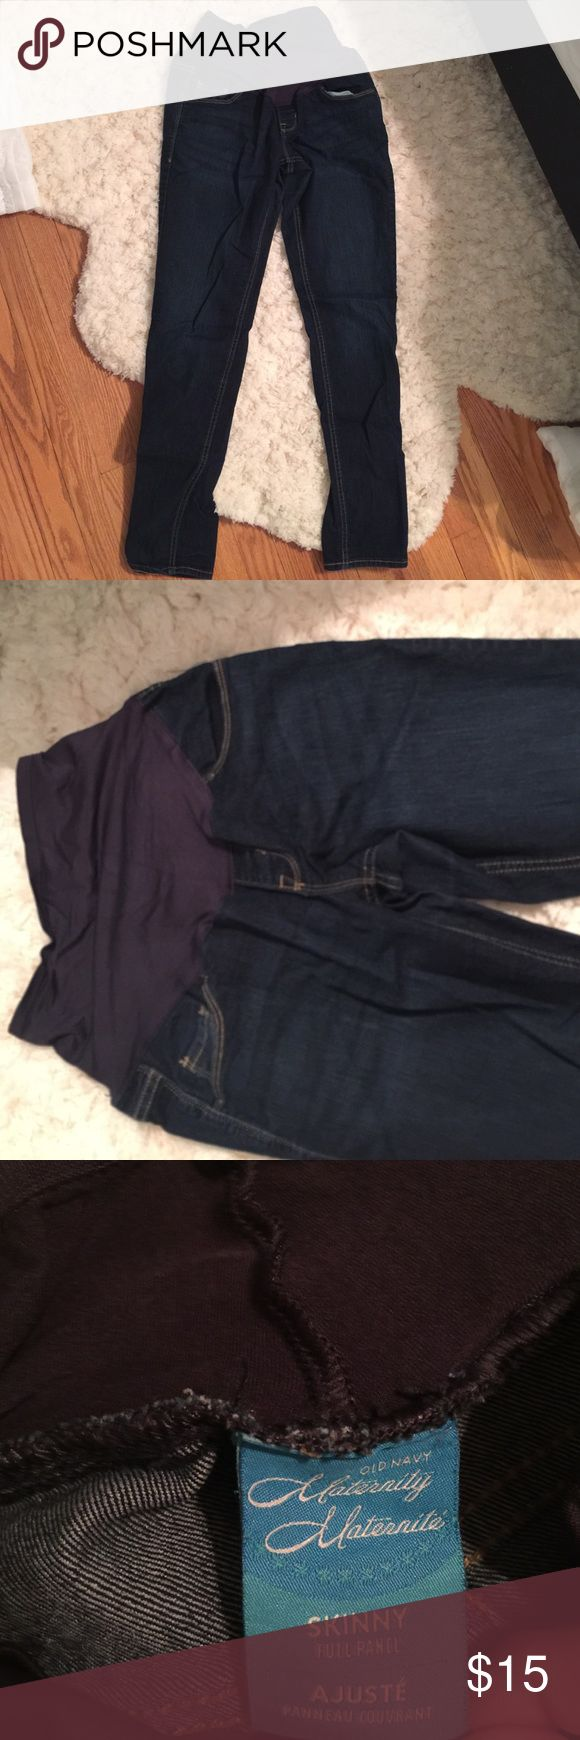 Old Navy maternity jeans Favorite pair of maternity jeans! Old navy - skinny fit Old Navy Jeans Skinny